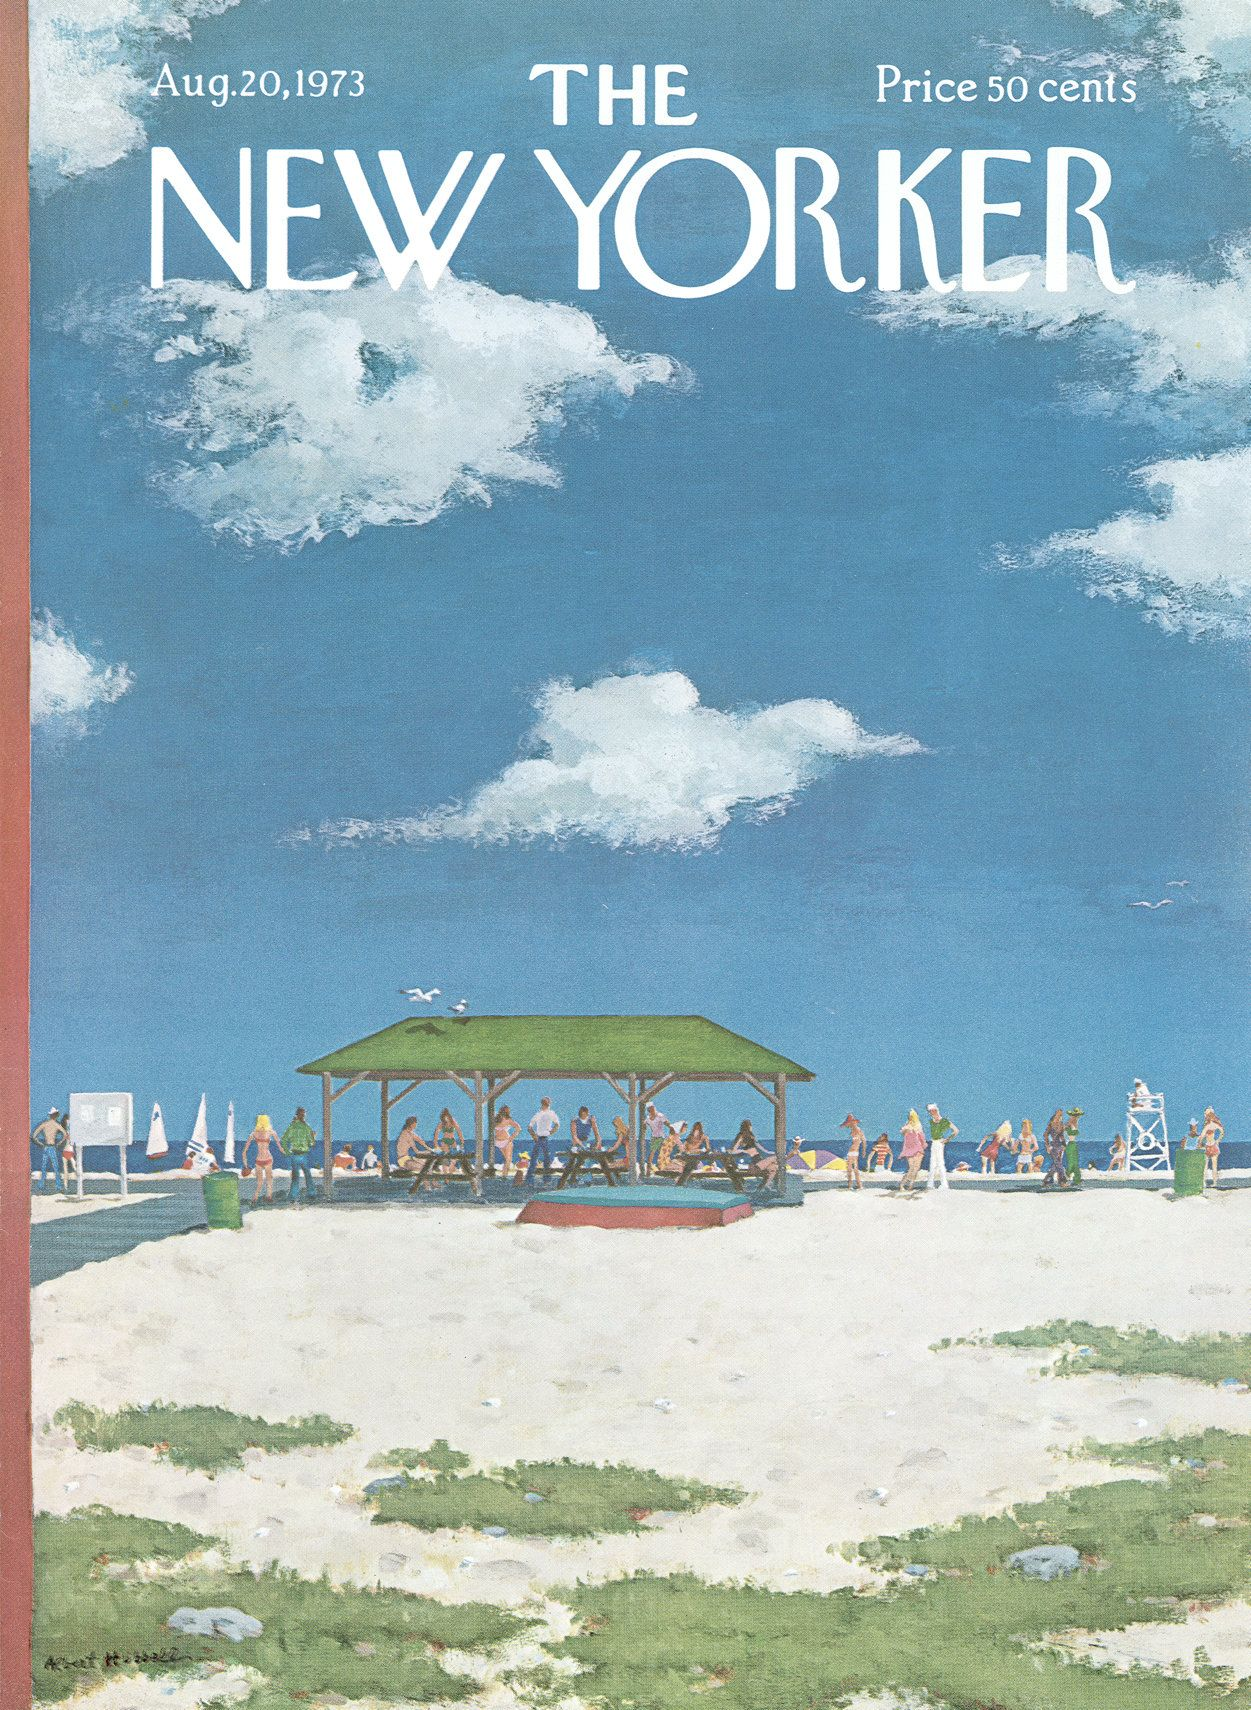 The New Yorker - Monday, August 20, 1973 - Issue # 2531 - Vol. 49 - N° 26 -  Cover by : Albert Hubbell